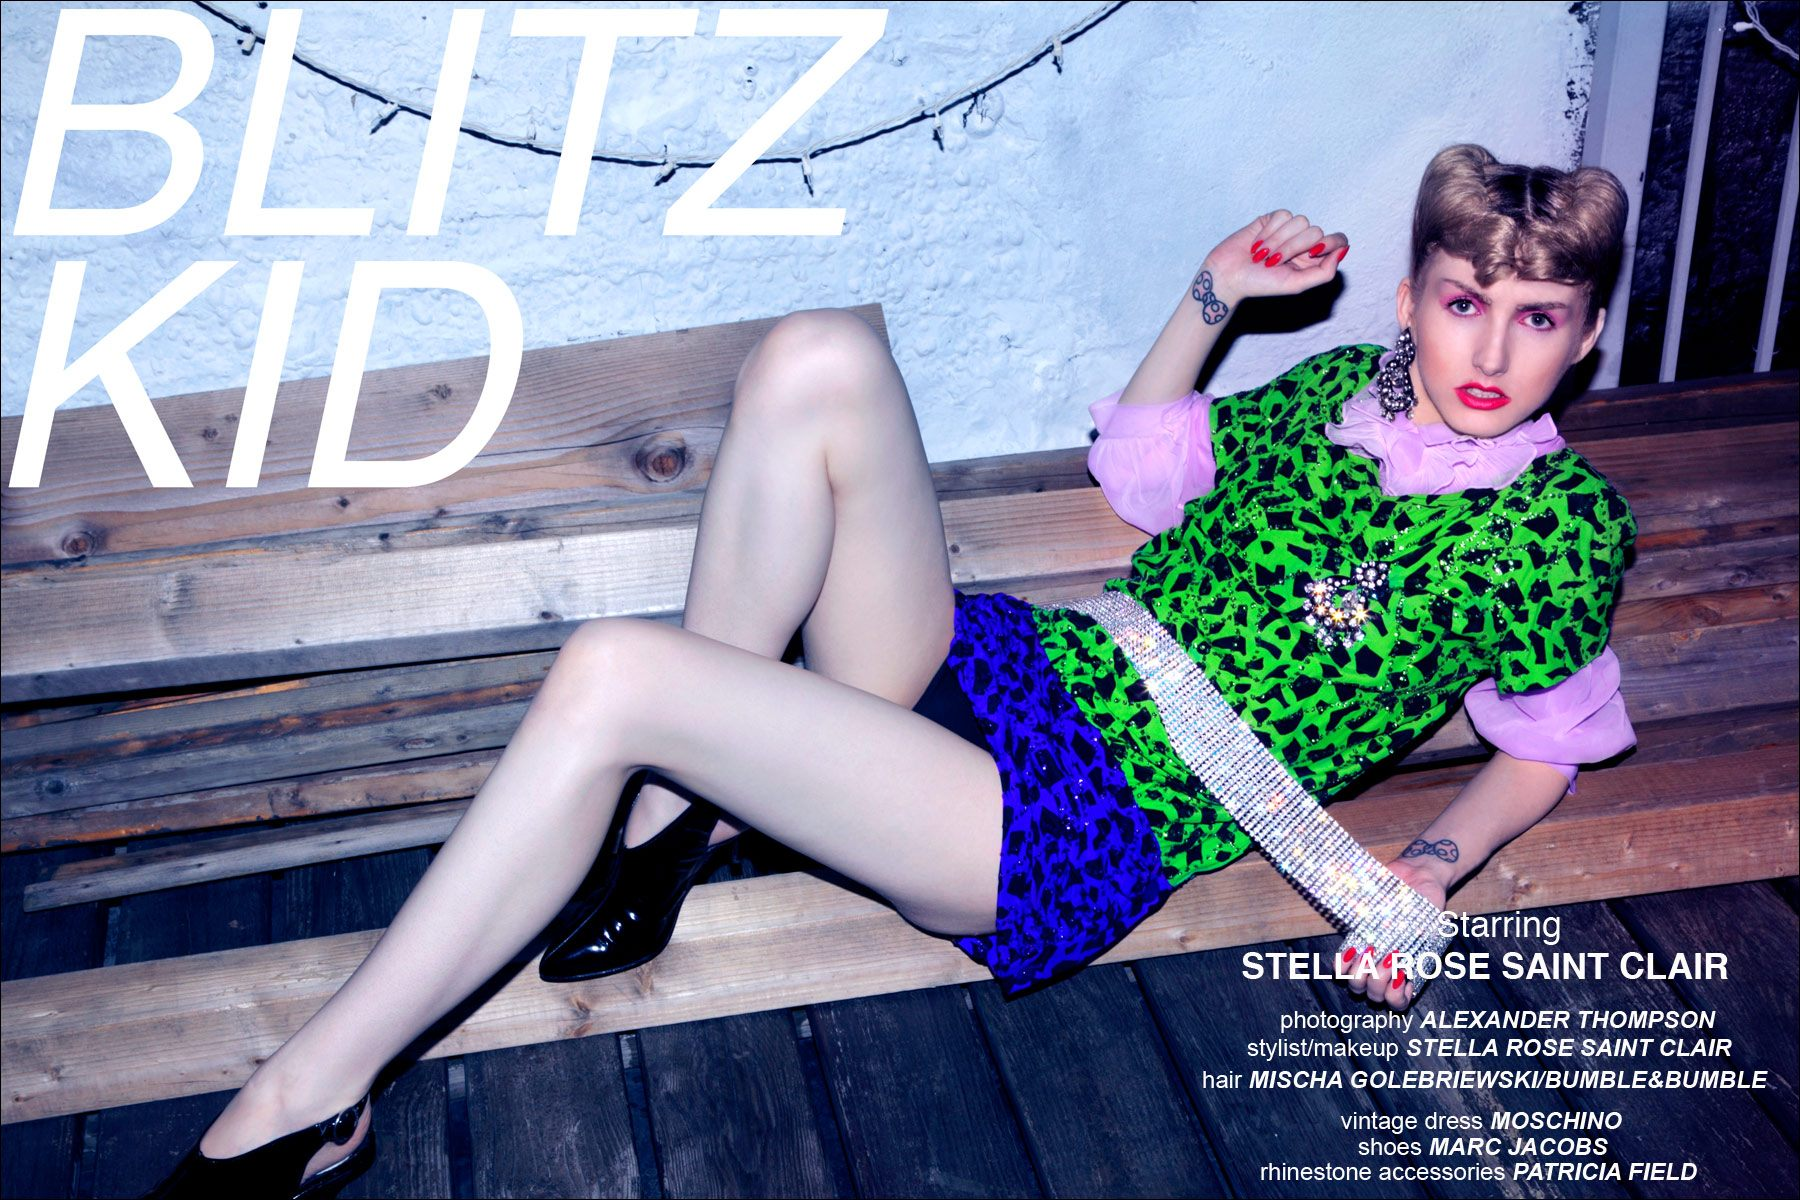 Stella Rose Saint Clair modeling in Blitz Kid editorial for Ponyboy Magazine, photographed by Alexander Thompson.